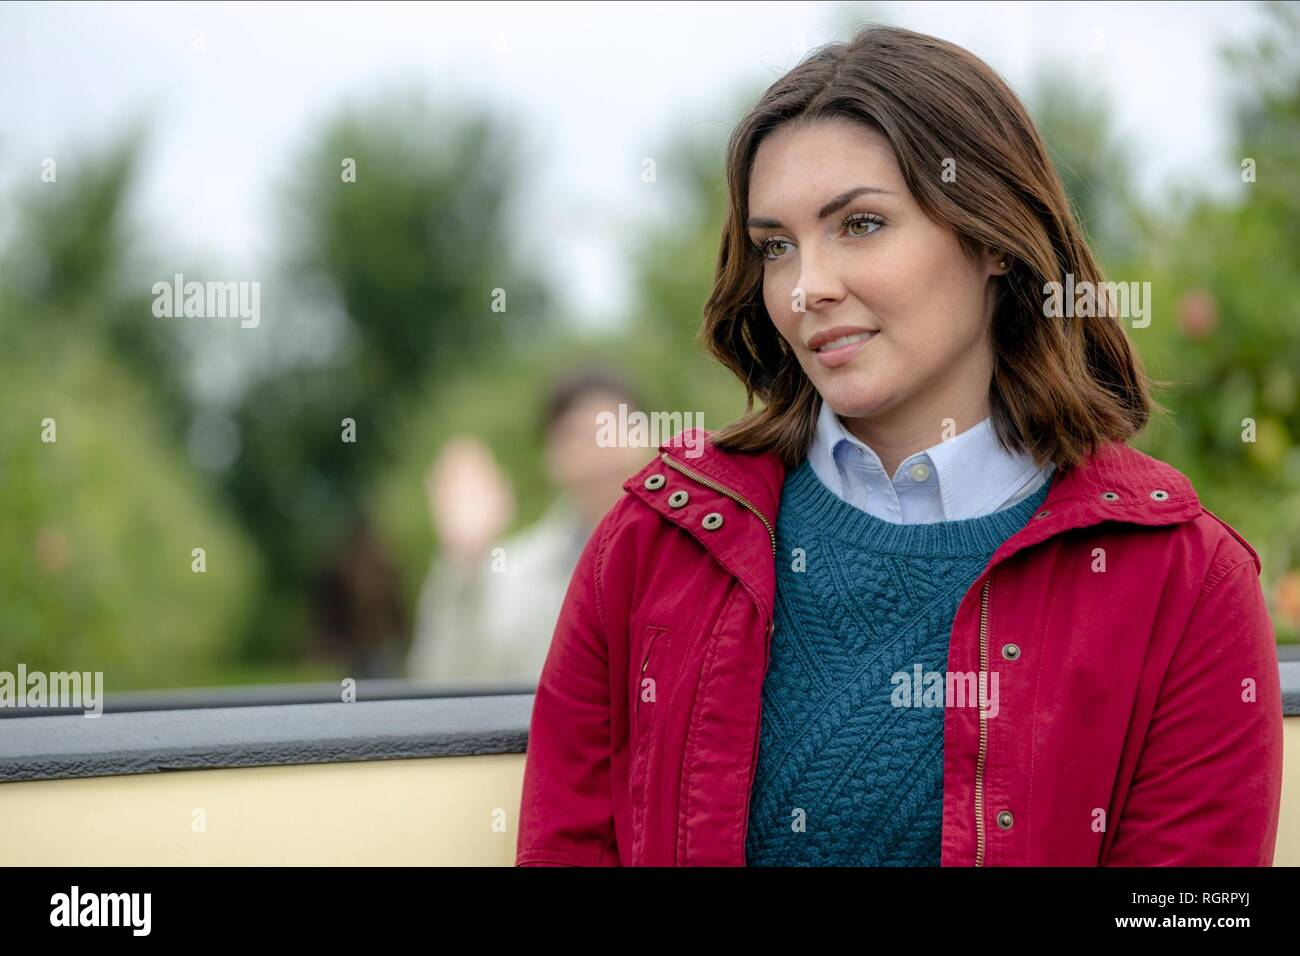 FALLING FOR YOU, TAYLOR COLE, 2018 - Stock Image